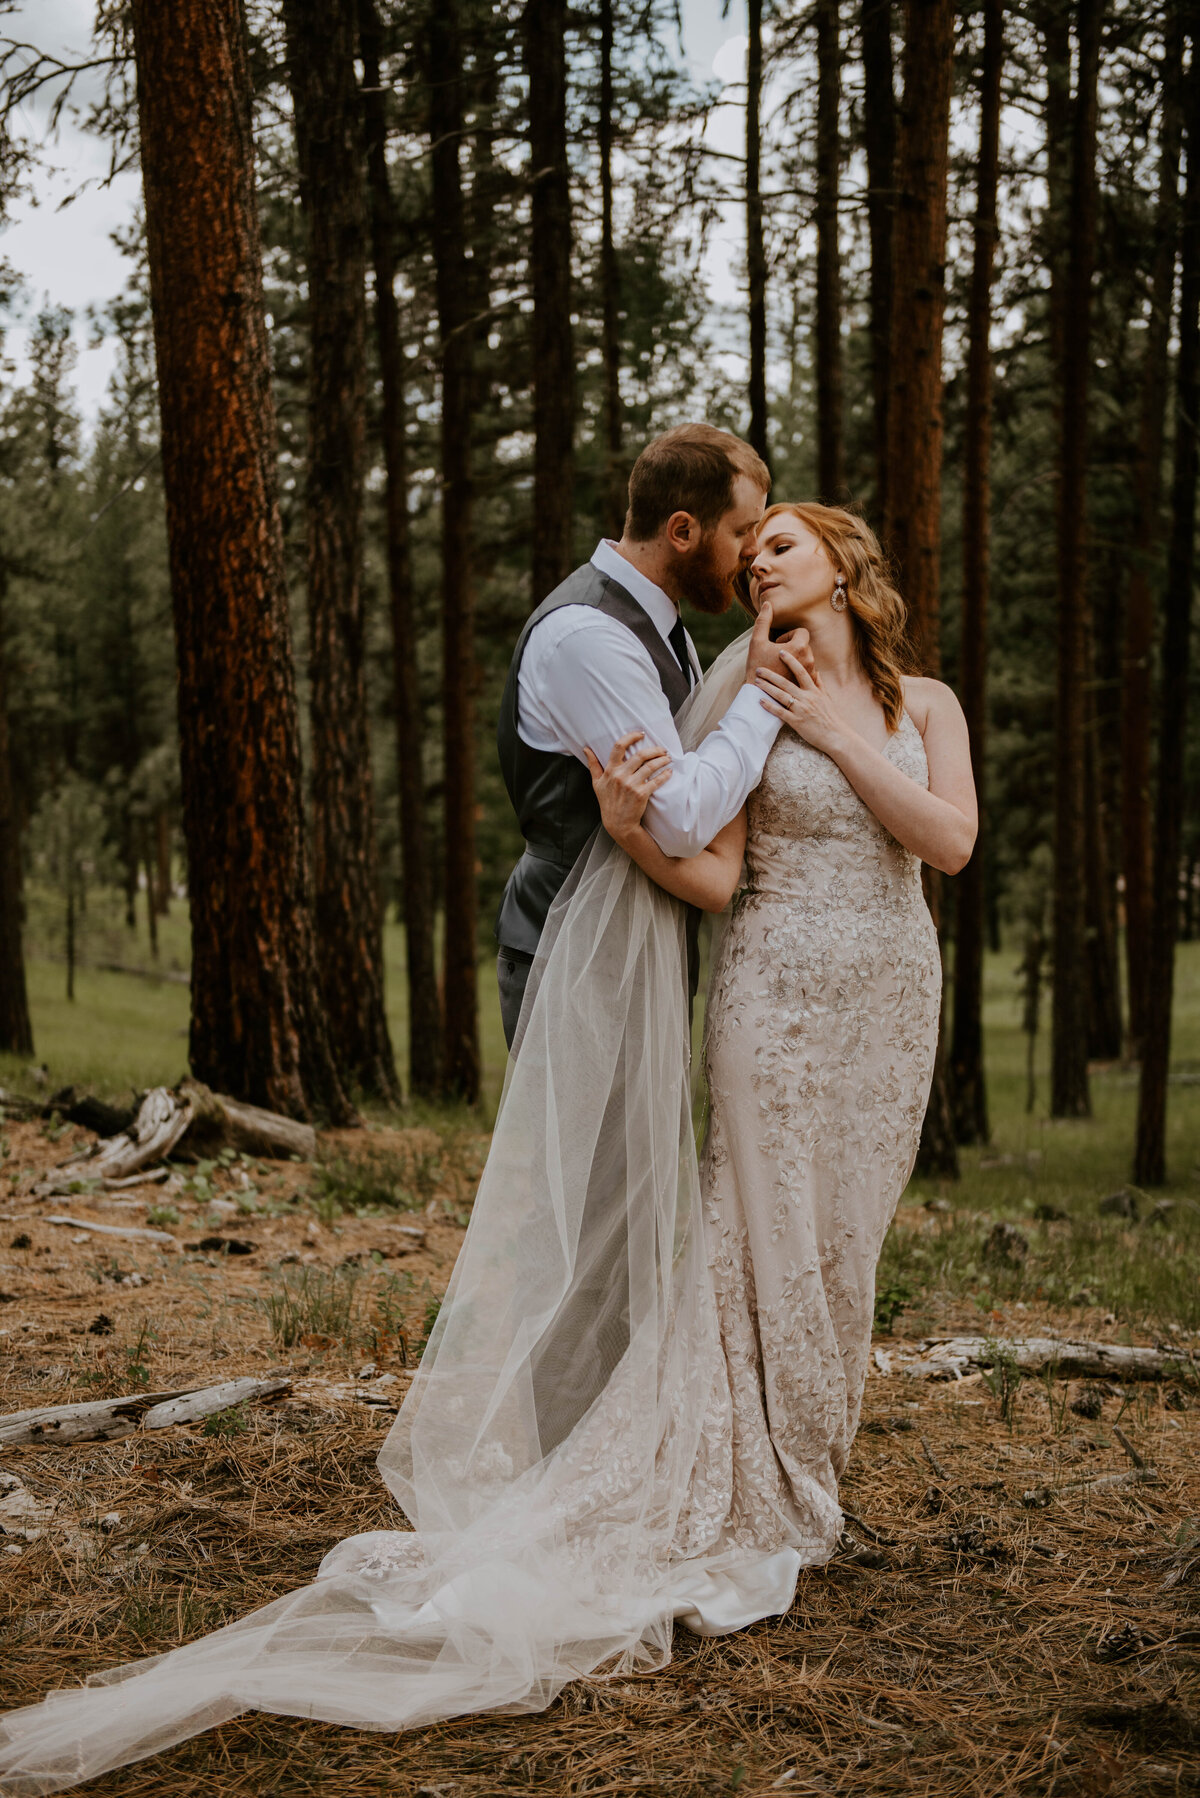 ochoco-forest-central-oregon-elopement-pnw-woods-wedding-covid-bend-photographer-inspiration1661